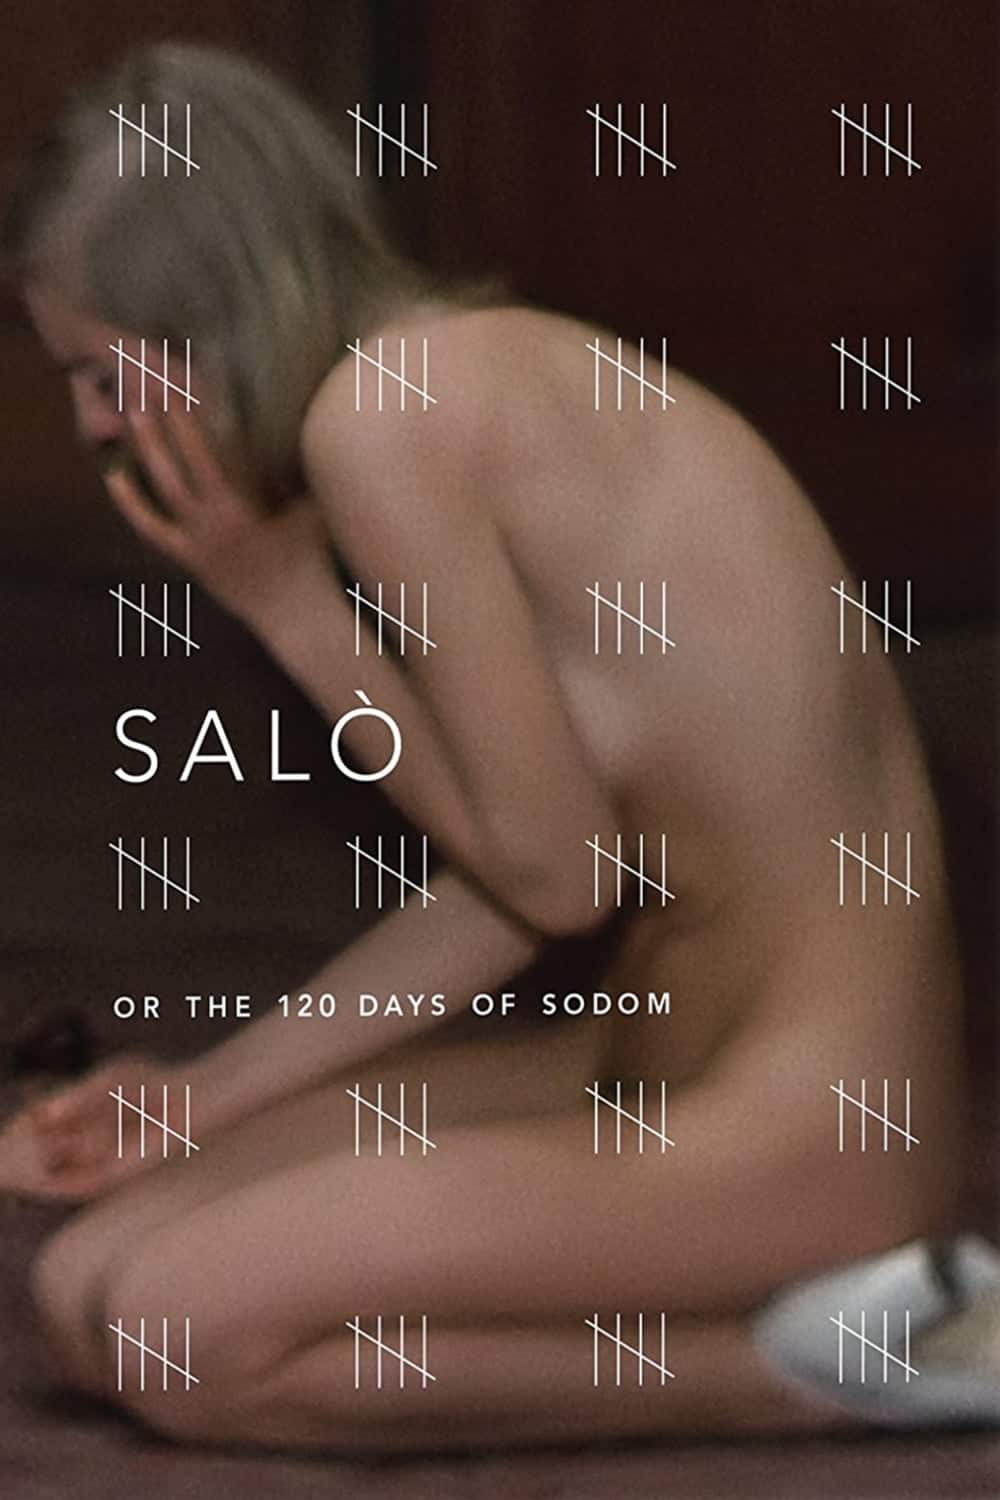 Salo, or The 120 Days of Sodom, 1975